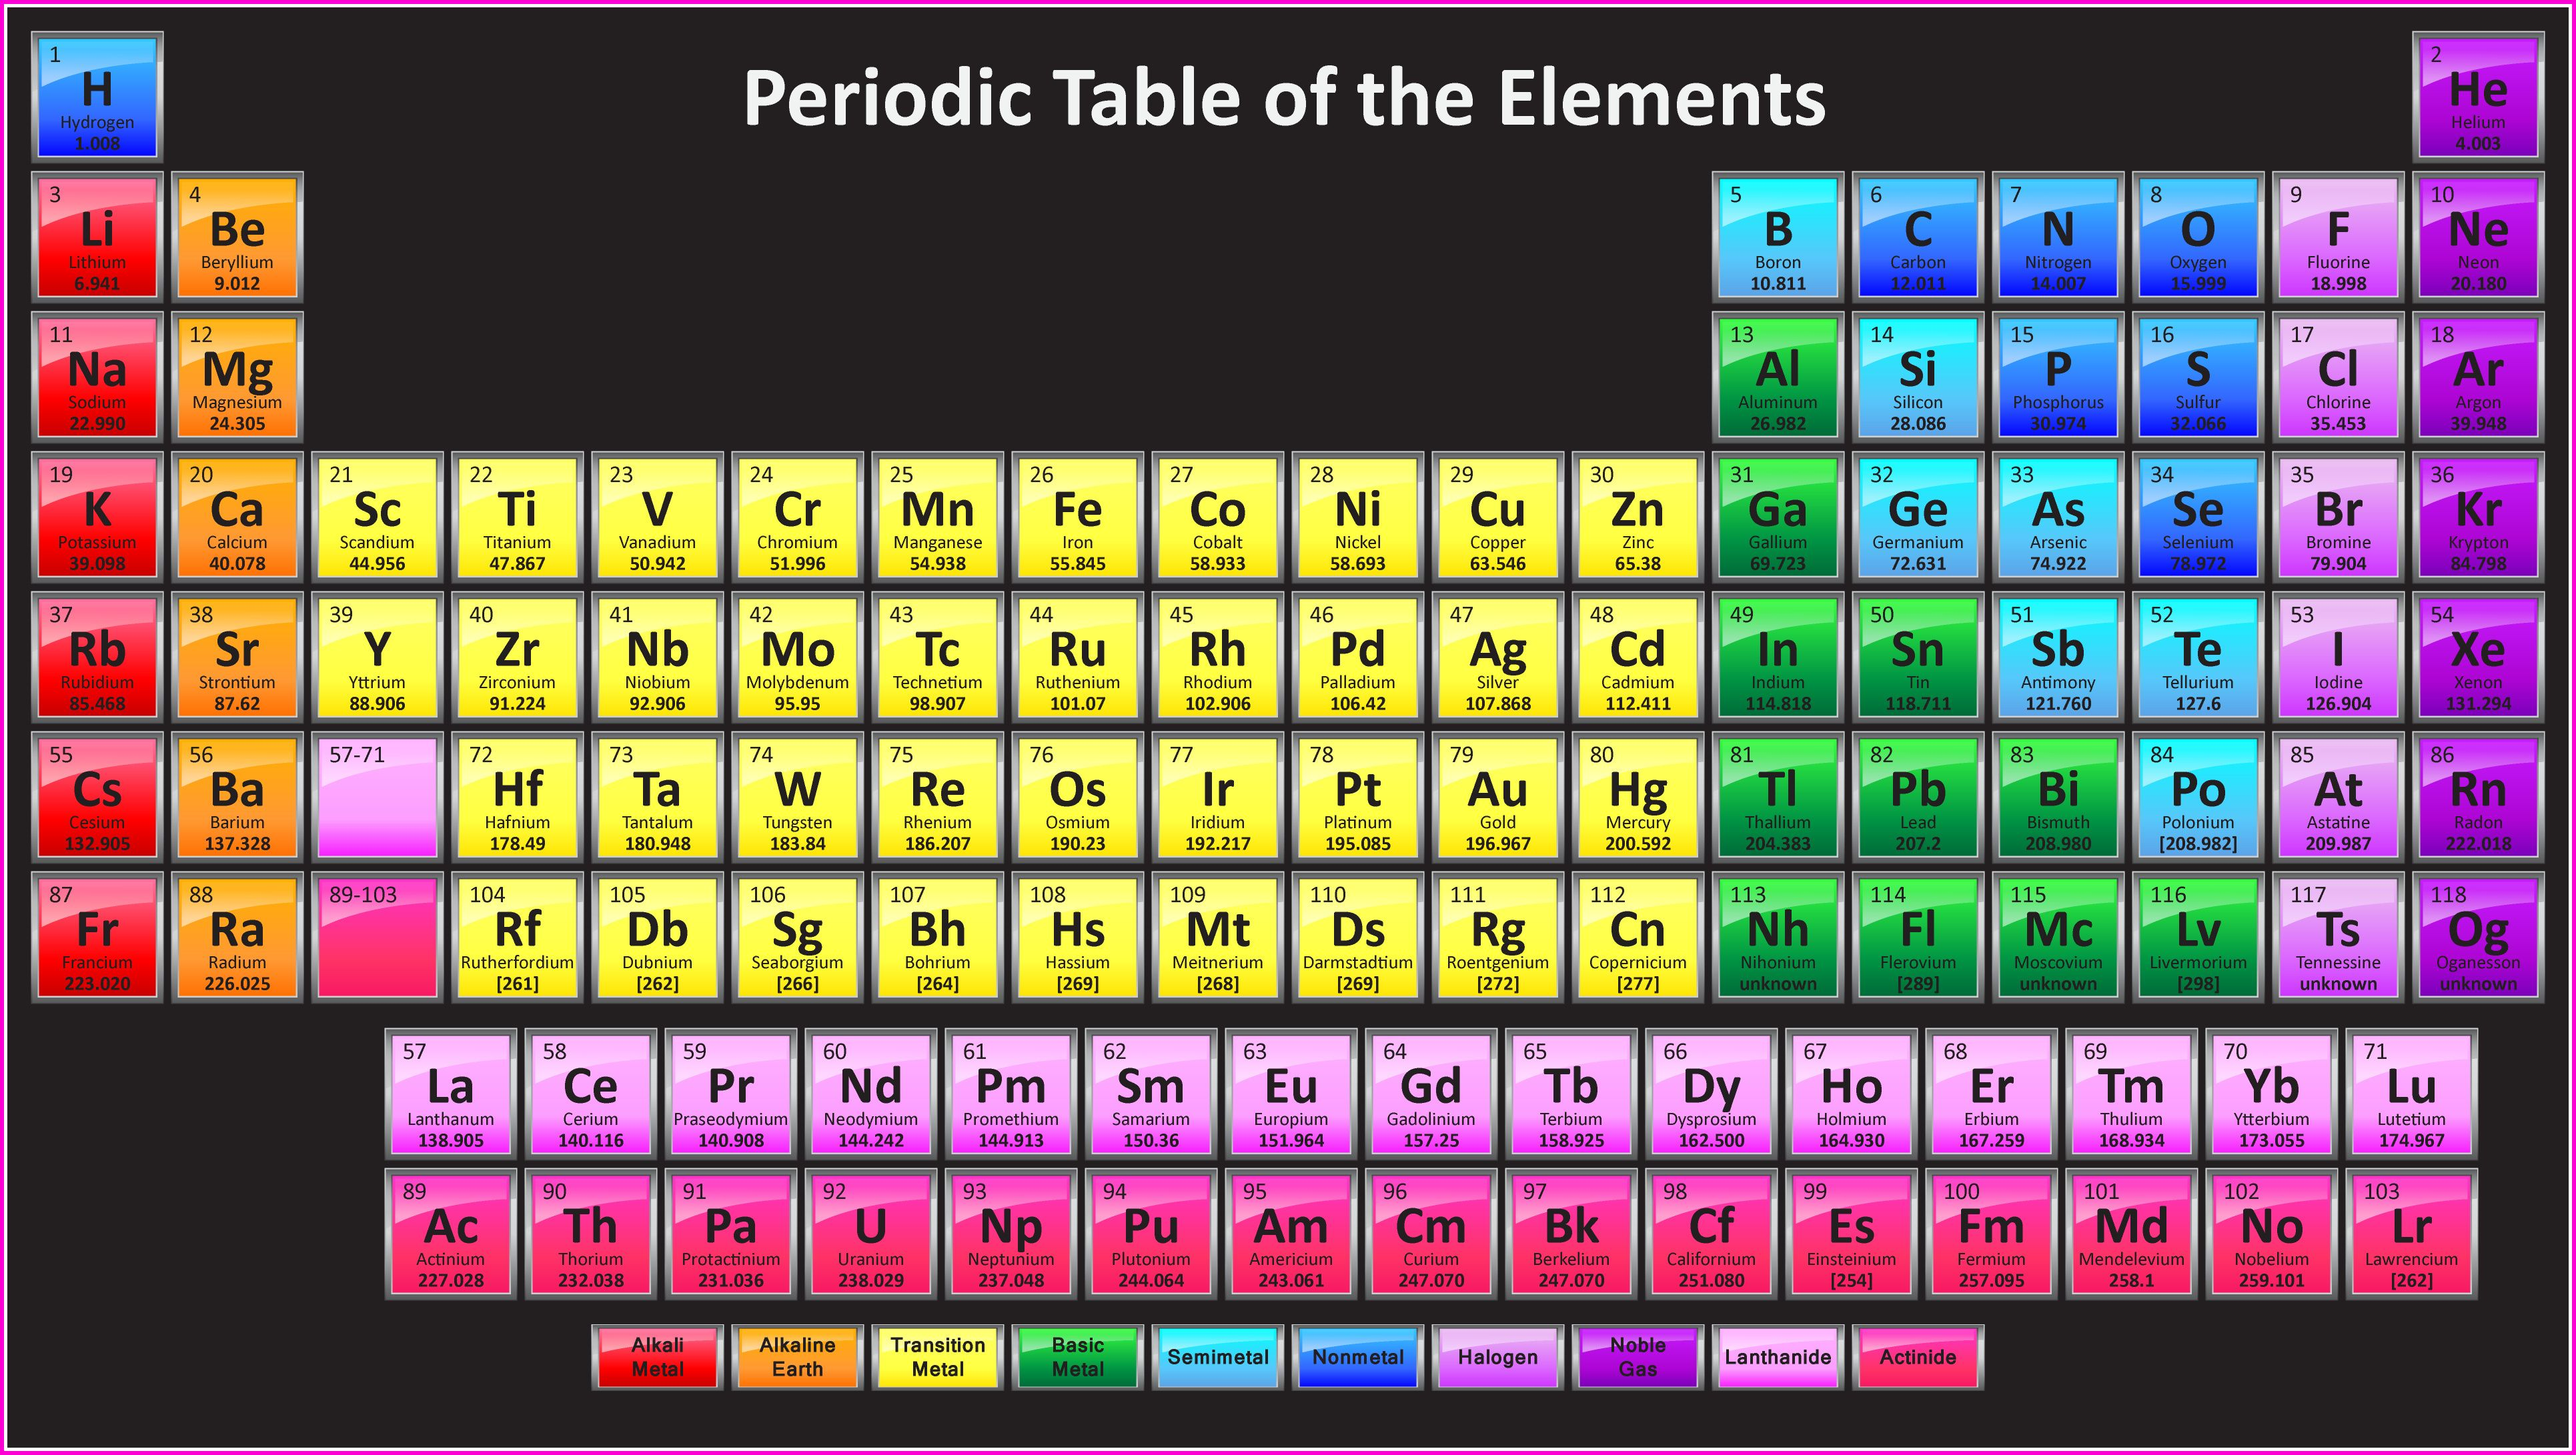 Periodic table hd wallpaper periodic table wallpaper pinterest periodic table hd wallpaper urtaz Gallery